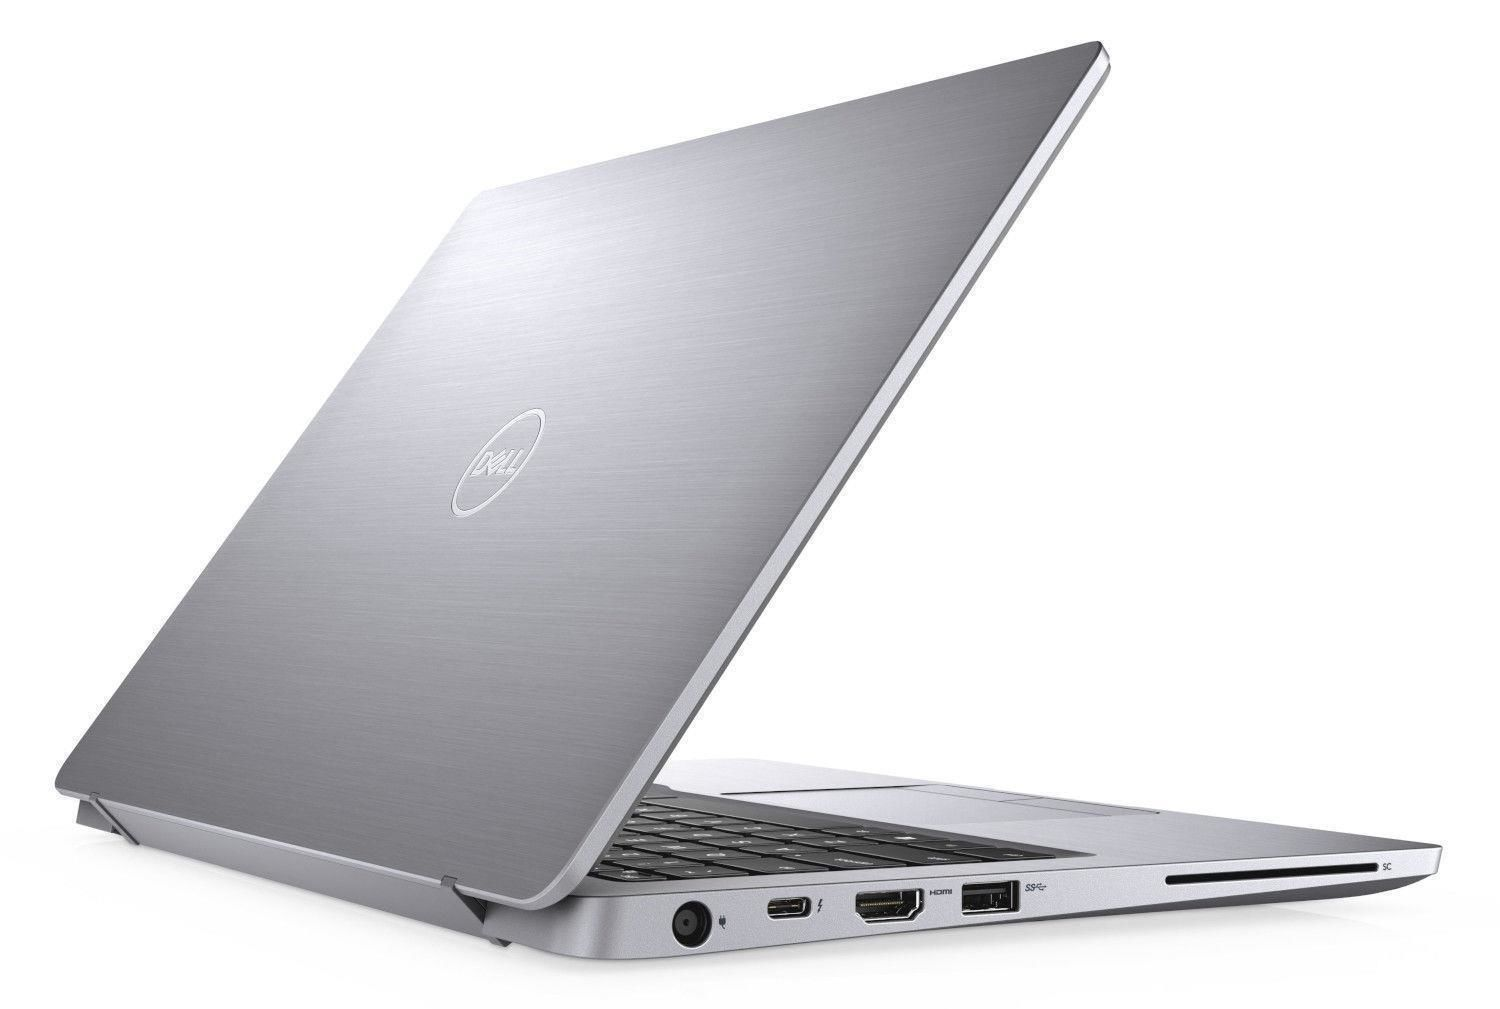 DELL Latitude 7300 Aluminum 13.3'' FHD WVA AG SLP (Intel® Core™ i5-8365U, 8GB 1x8GB DDR4, M.2 256GB PCIe NVMe, Intel UHD 620 Graphics, no ODD, WiFi-AC/BT5.0, HDMI, TB3, 4 Cell 60Whr, HD Webcam, Backlit KB, vPro, Ubuntu, 1.25kg)